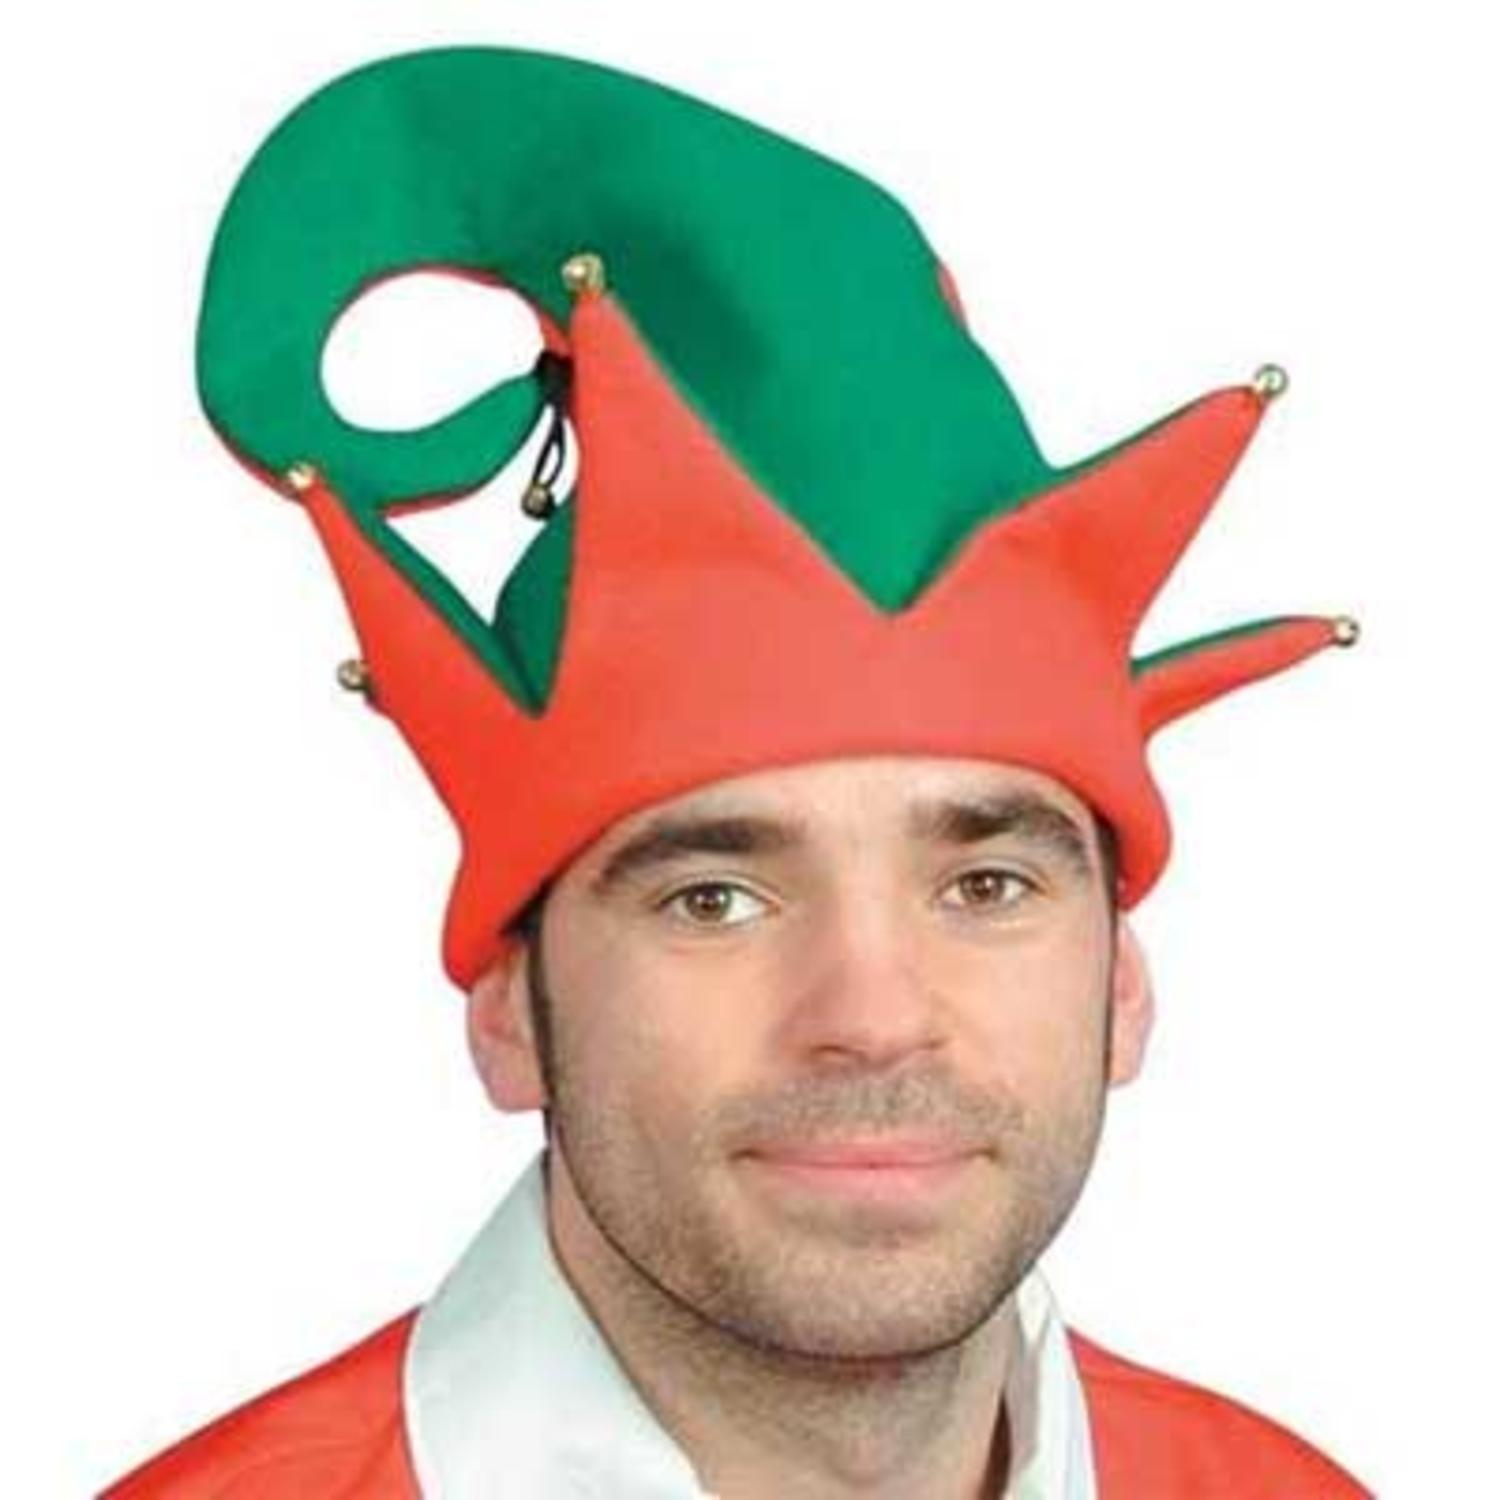 Festive Two-Tone Adult Christmas Elf Hat with Jingle Bells